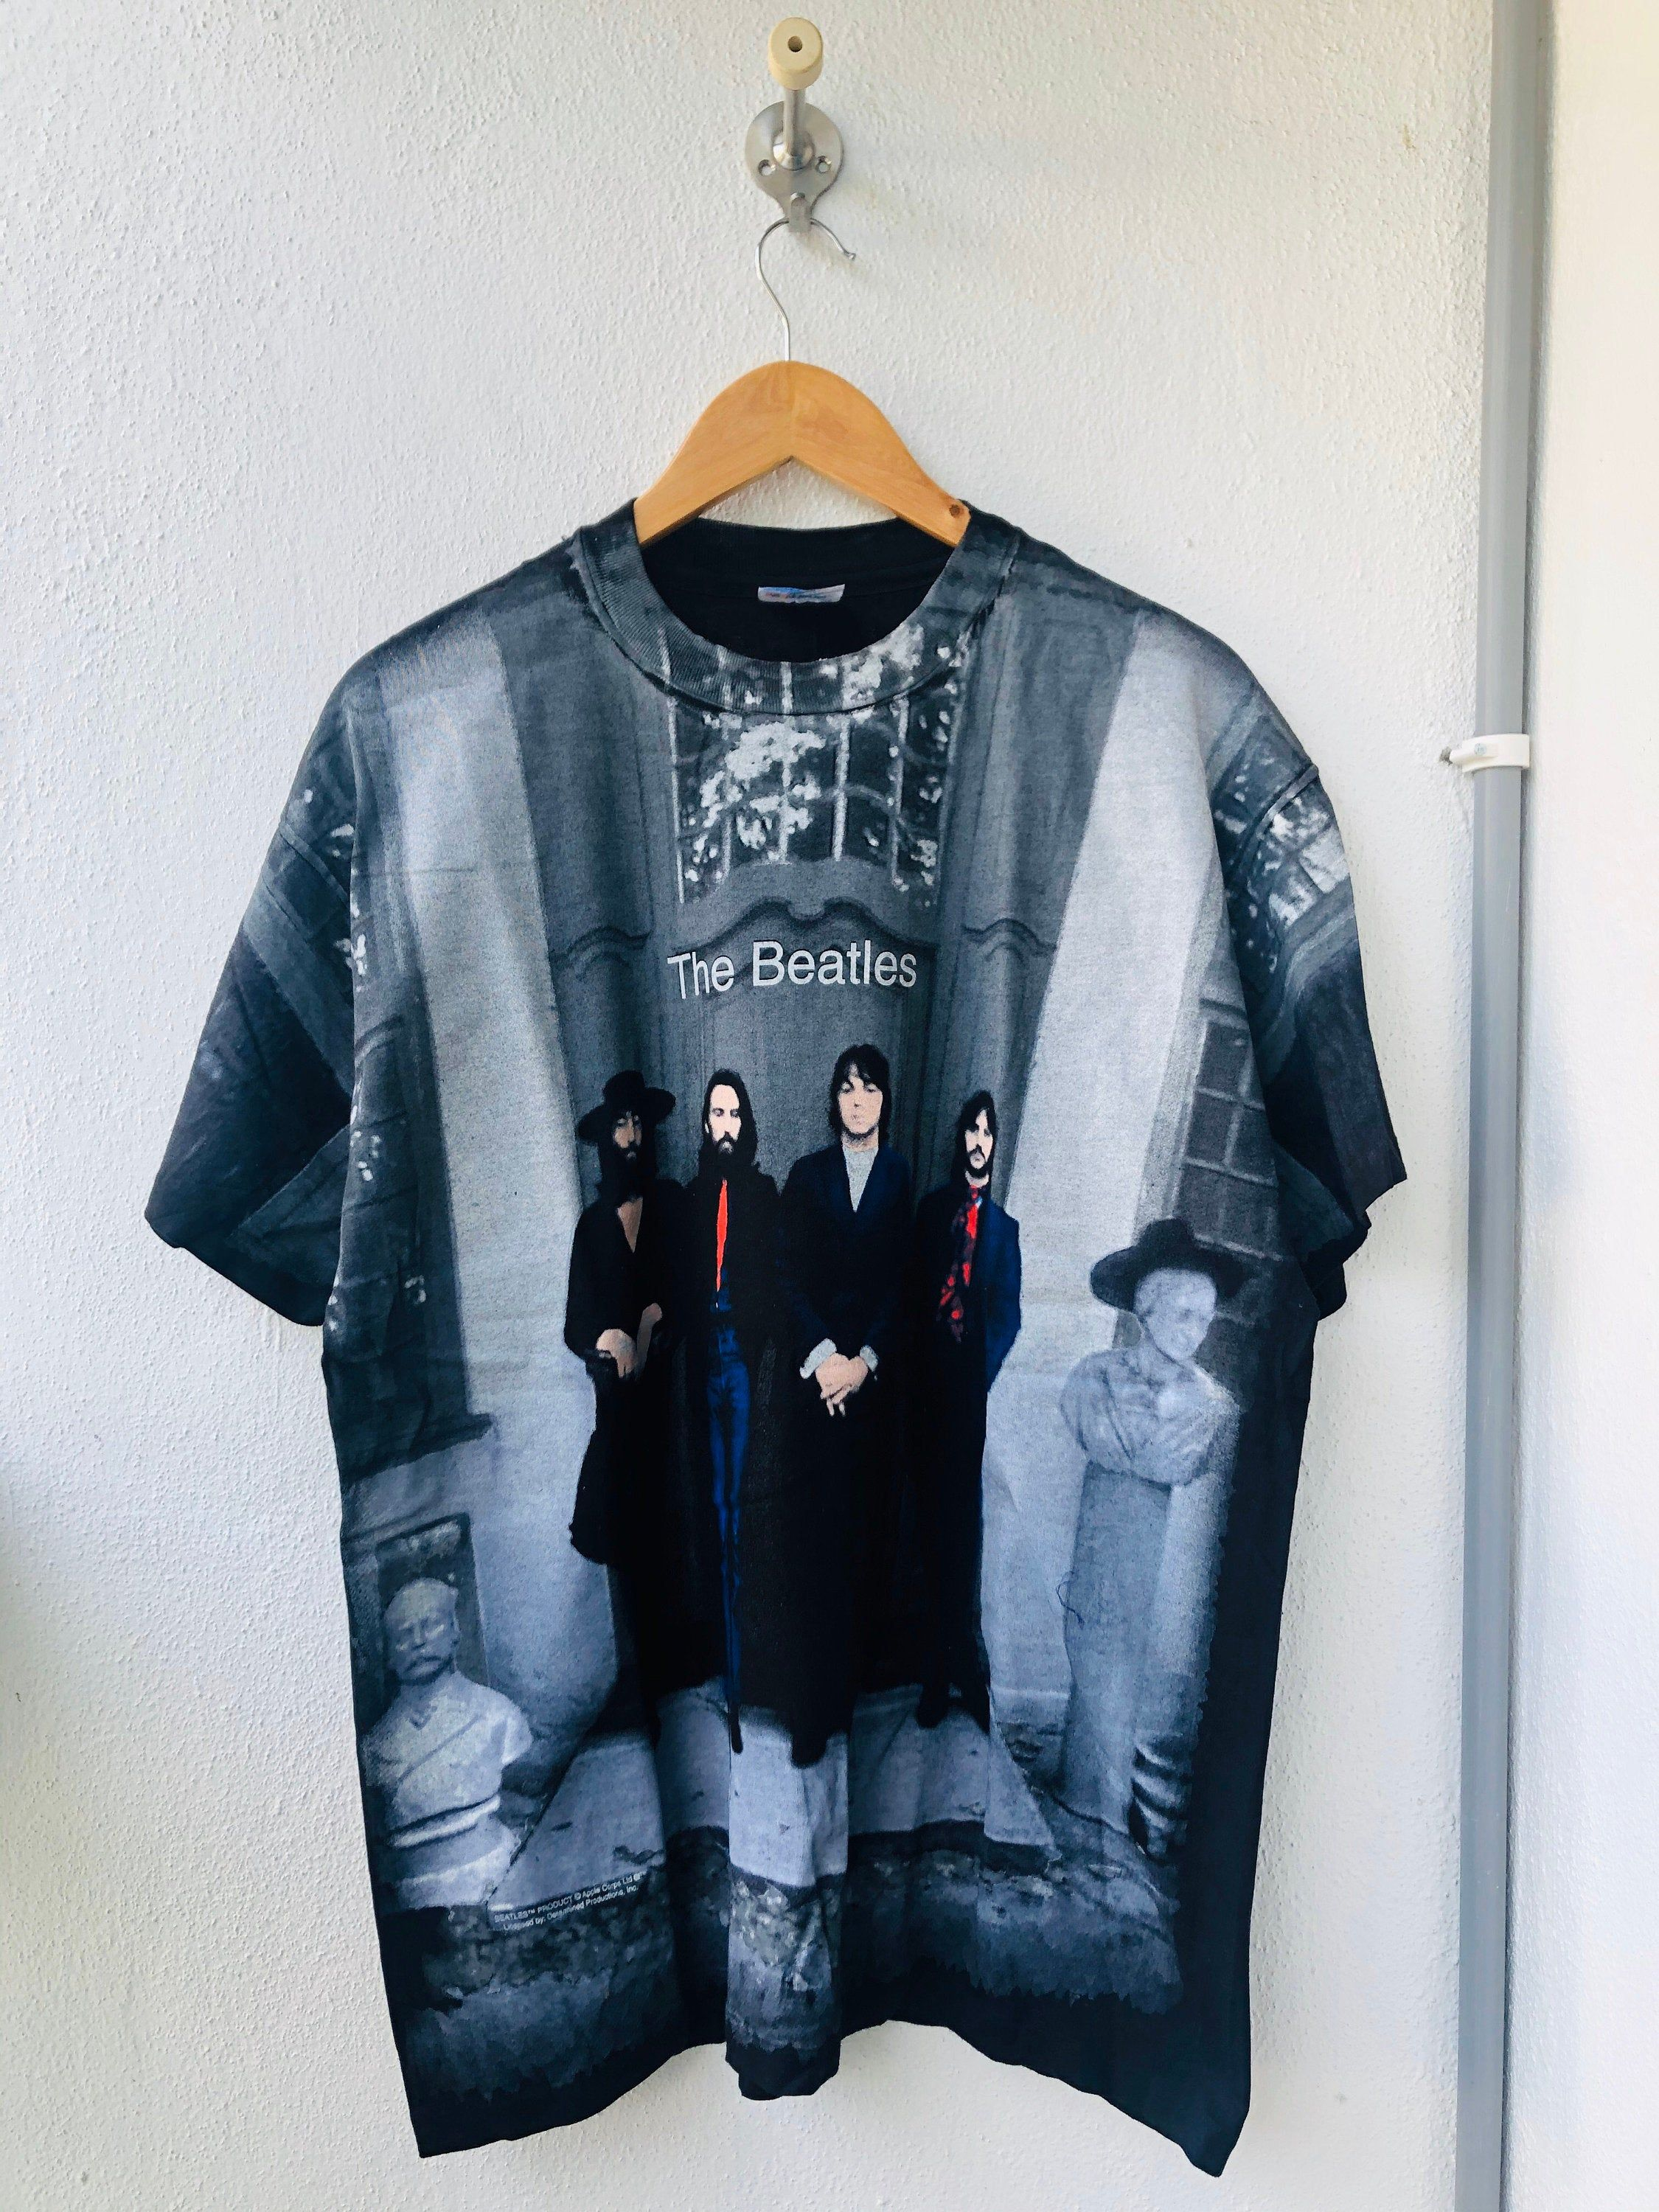 Vintage Original 90s The Beatles All Over Printed Design Etsy Band Tshirts Shirts Used Clothing